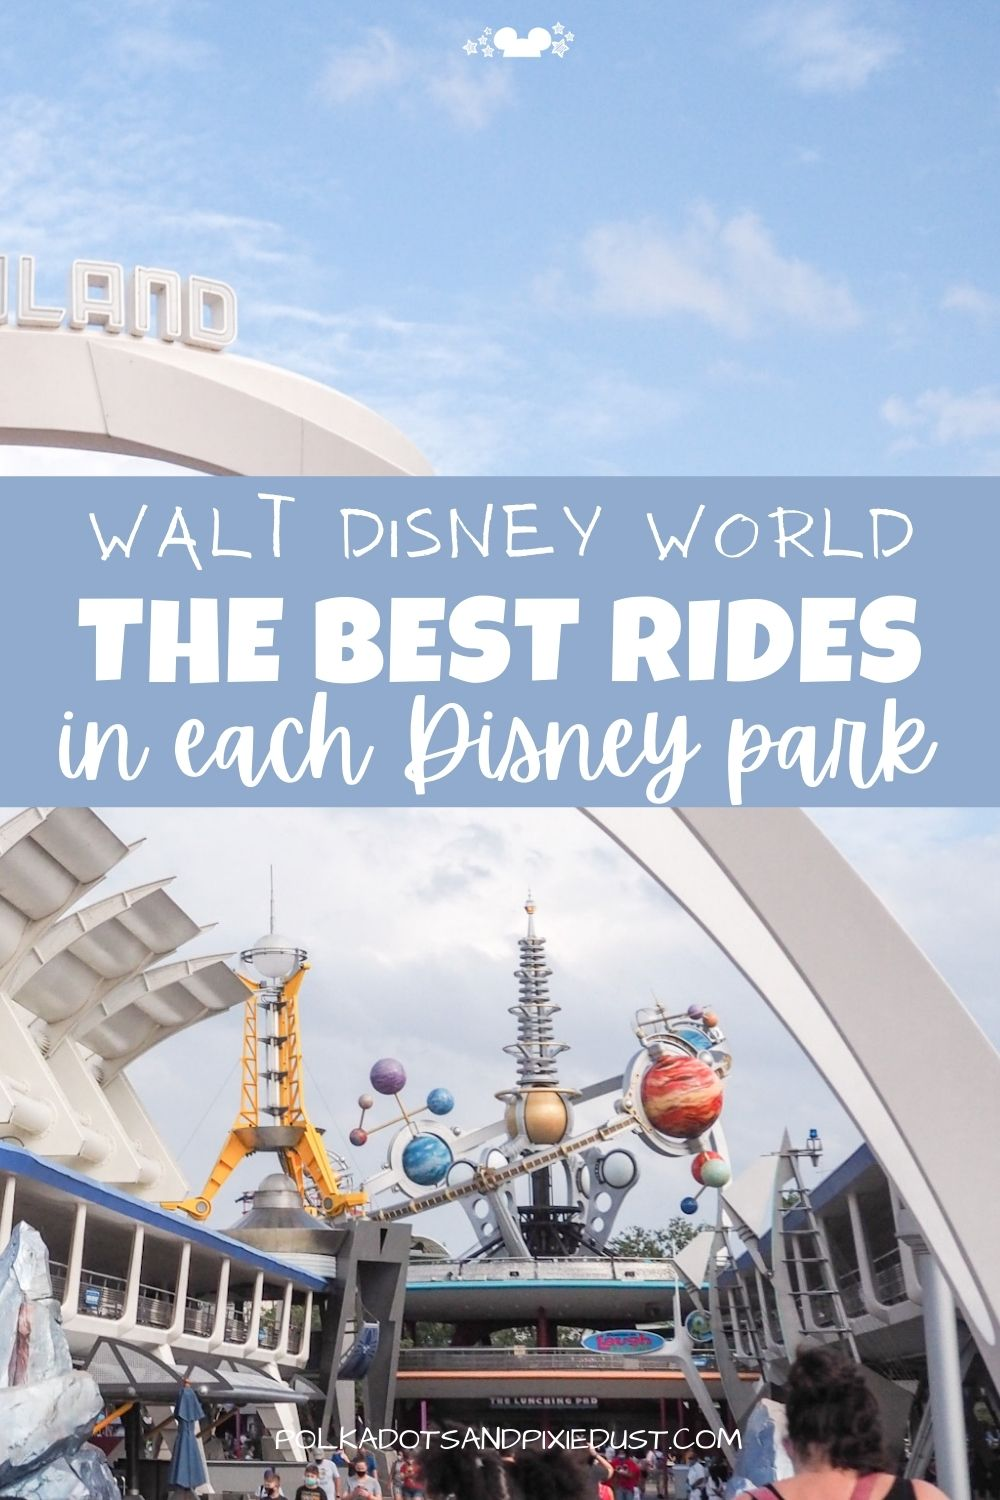 Walt Disney World Parks are filled with rides, attractions, shows and more! So how can you possible choose what is worth your valuable Disney time? Check out the post for our TOP Rides in each Disney Park and why we recommend them! Plus height requirements, ride category and whether it's worth your fast pass! #disneyvacation #disneytips #polkadotpixies